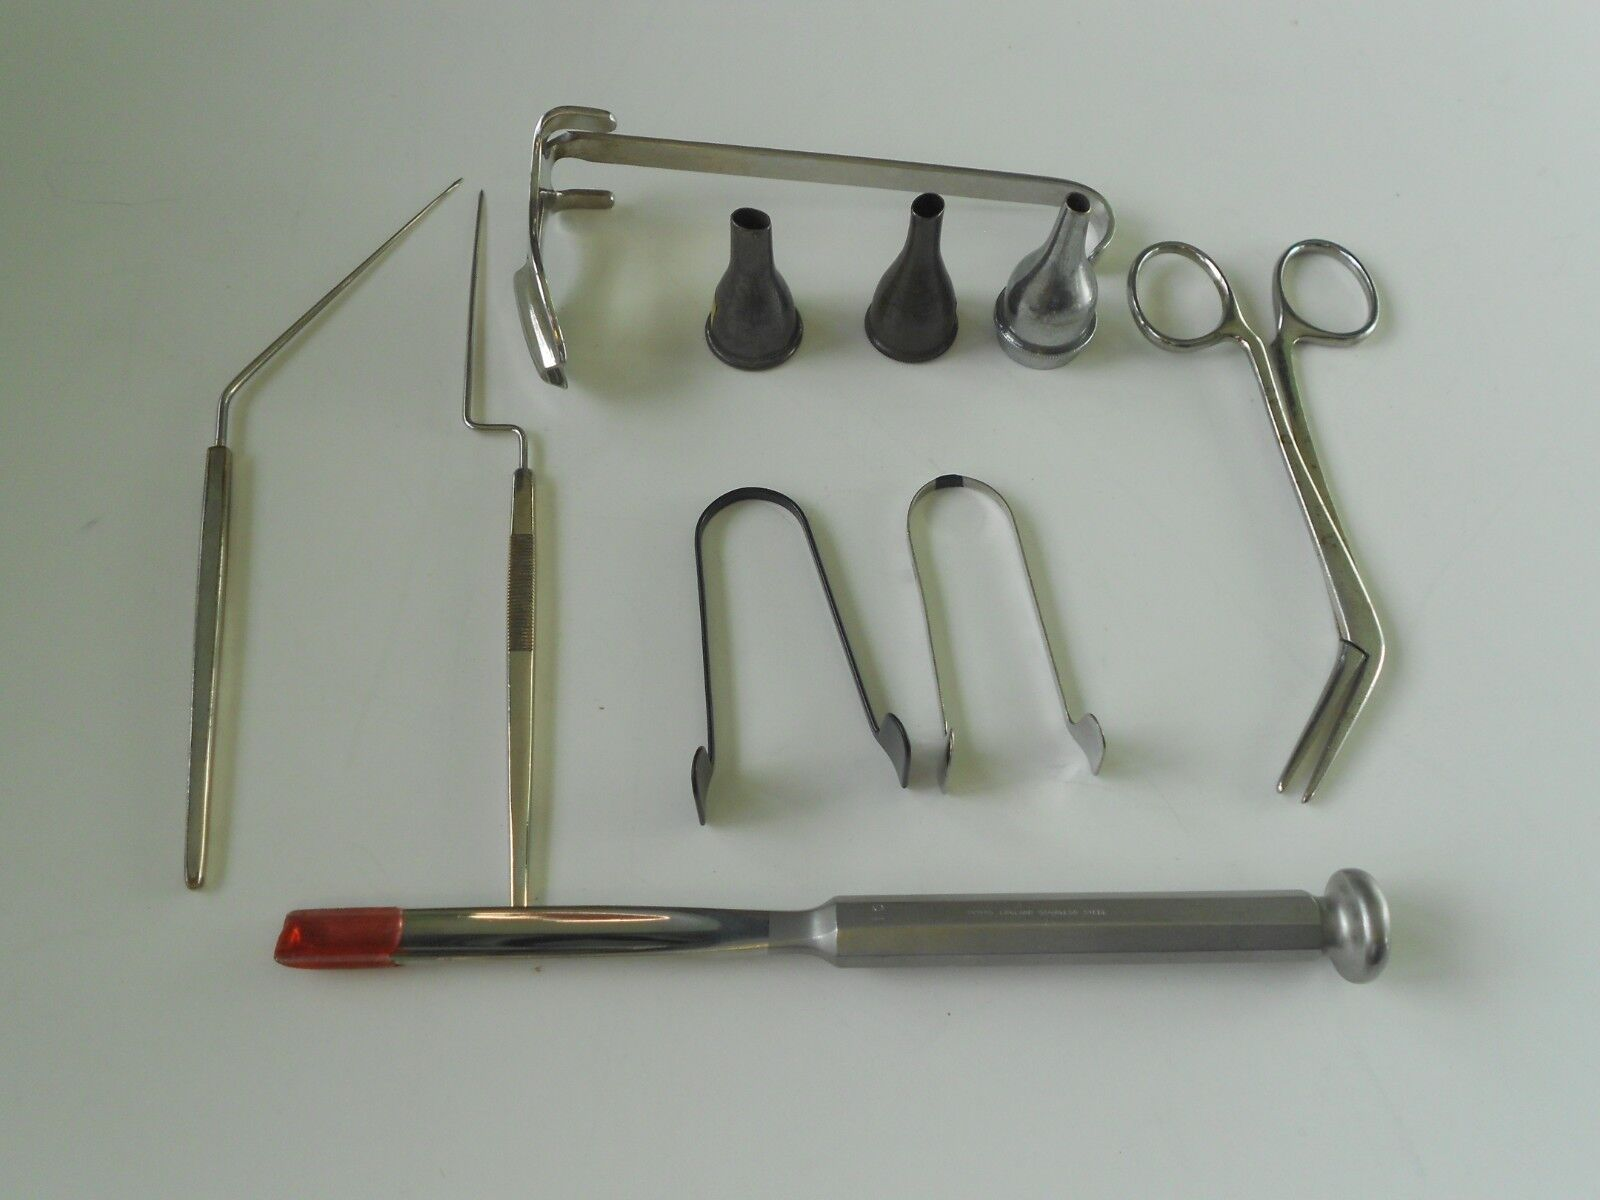 10 x Downs,and Other Vintage/Later Surgical/Medical Tools Surgeon Instruments (02)